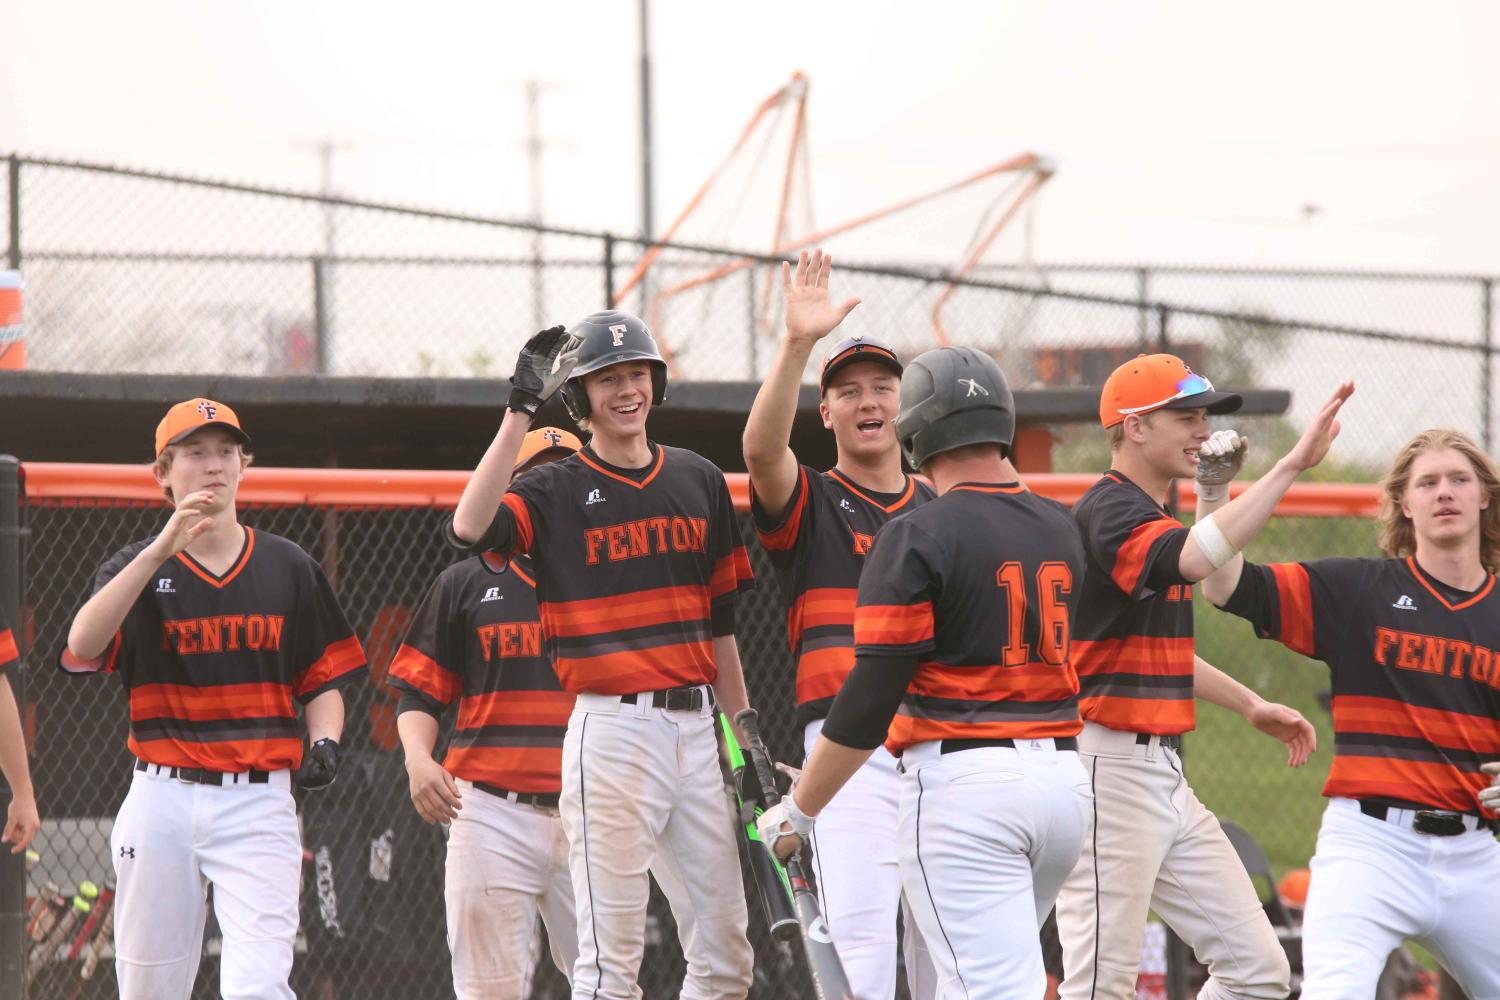 Junior Nolan Lawrence high fives teammate after receiving a run.  The varsity baseball team beat Lake Fenton 14-6 on May 10.